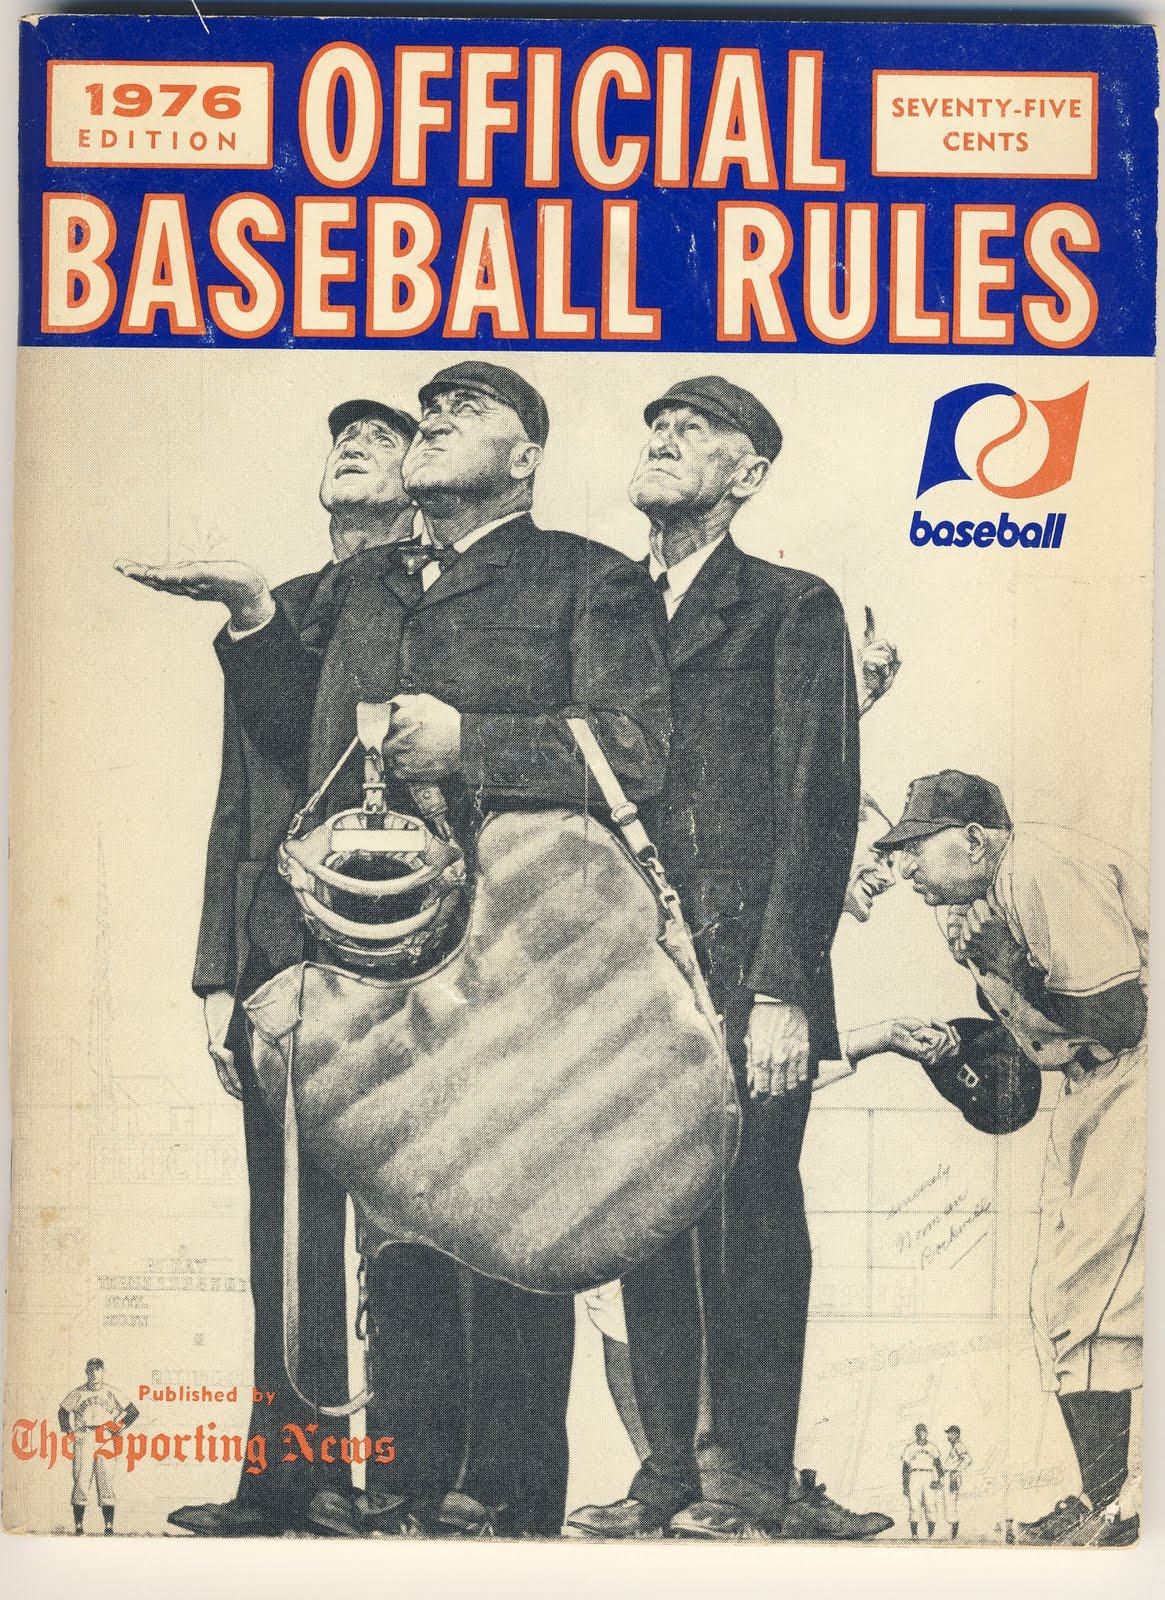 Baseball Rule Book Cover